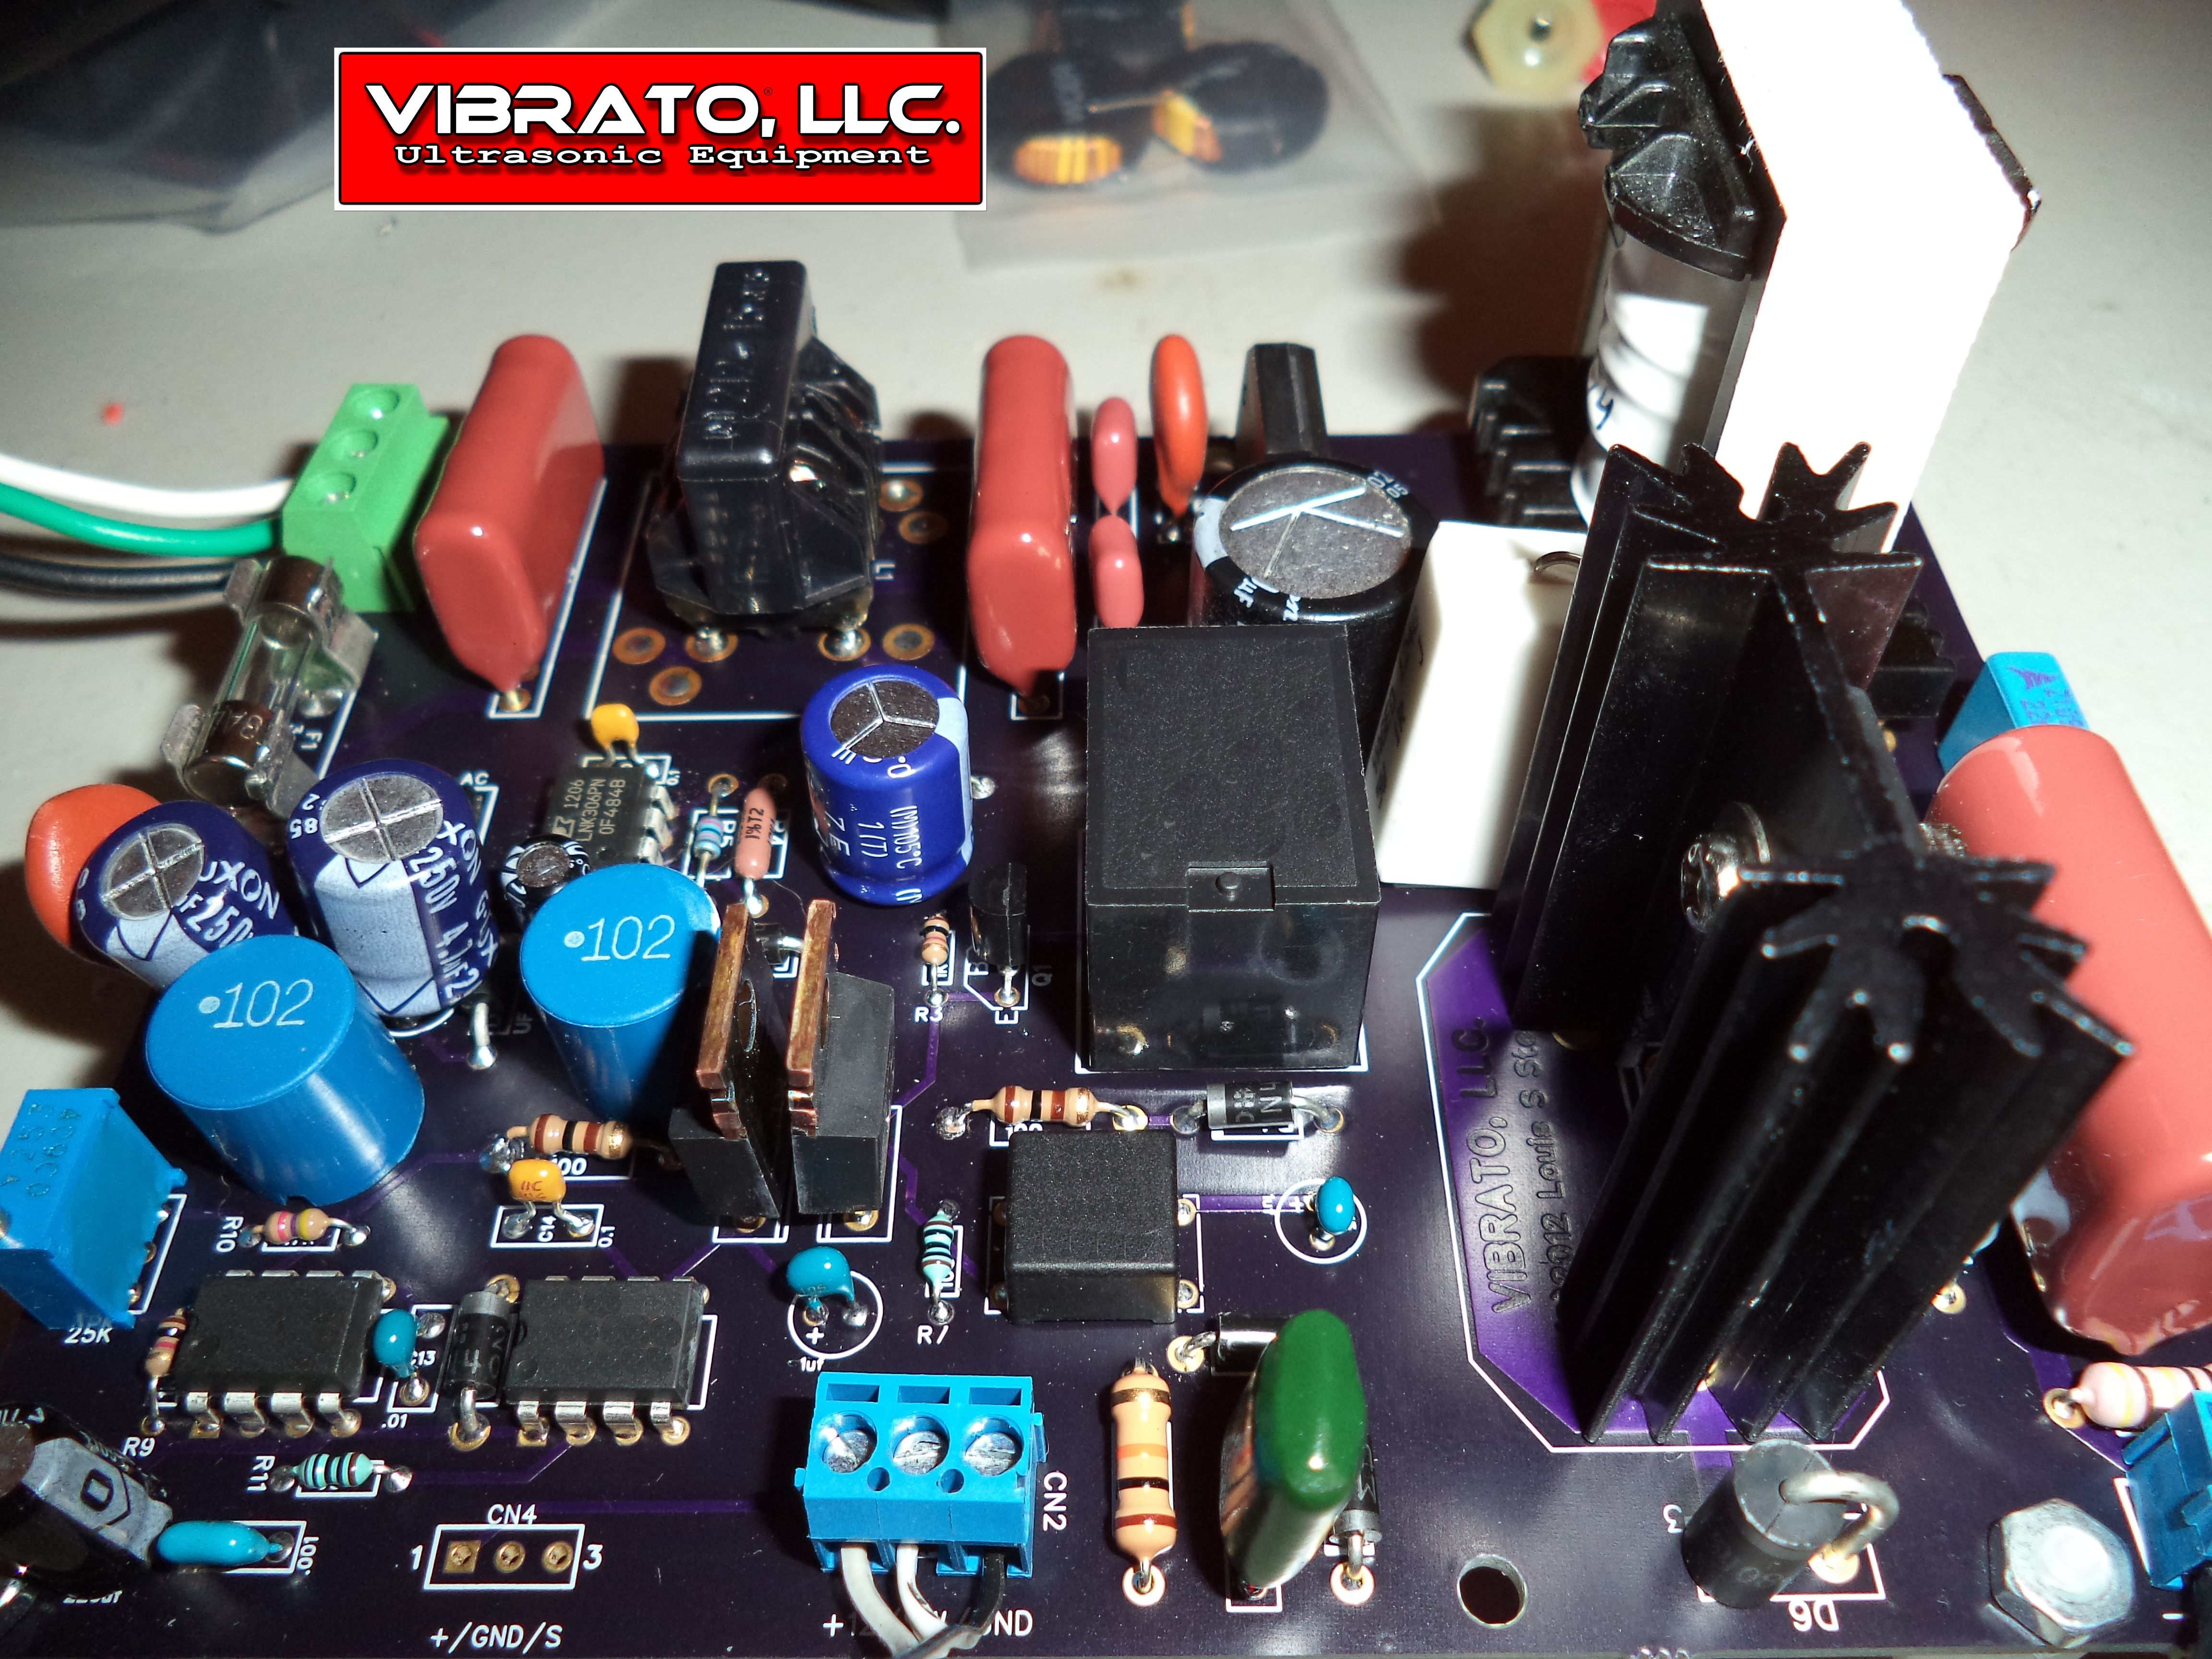 Ultrasonic One System By Vibrato Llc A New All In Generator Circuit And Buy Utilizing Our Patent Pending With The Power Supply Filter Circuits Integrated